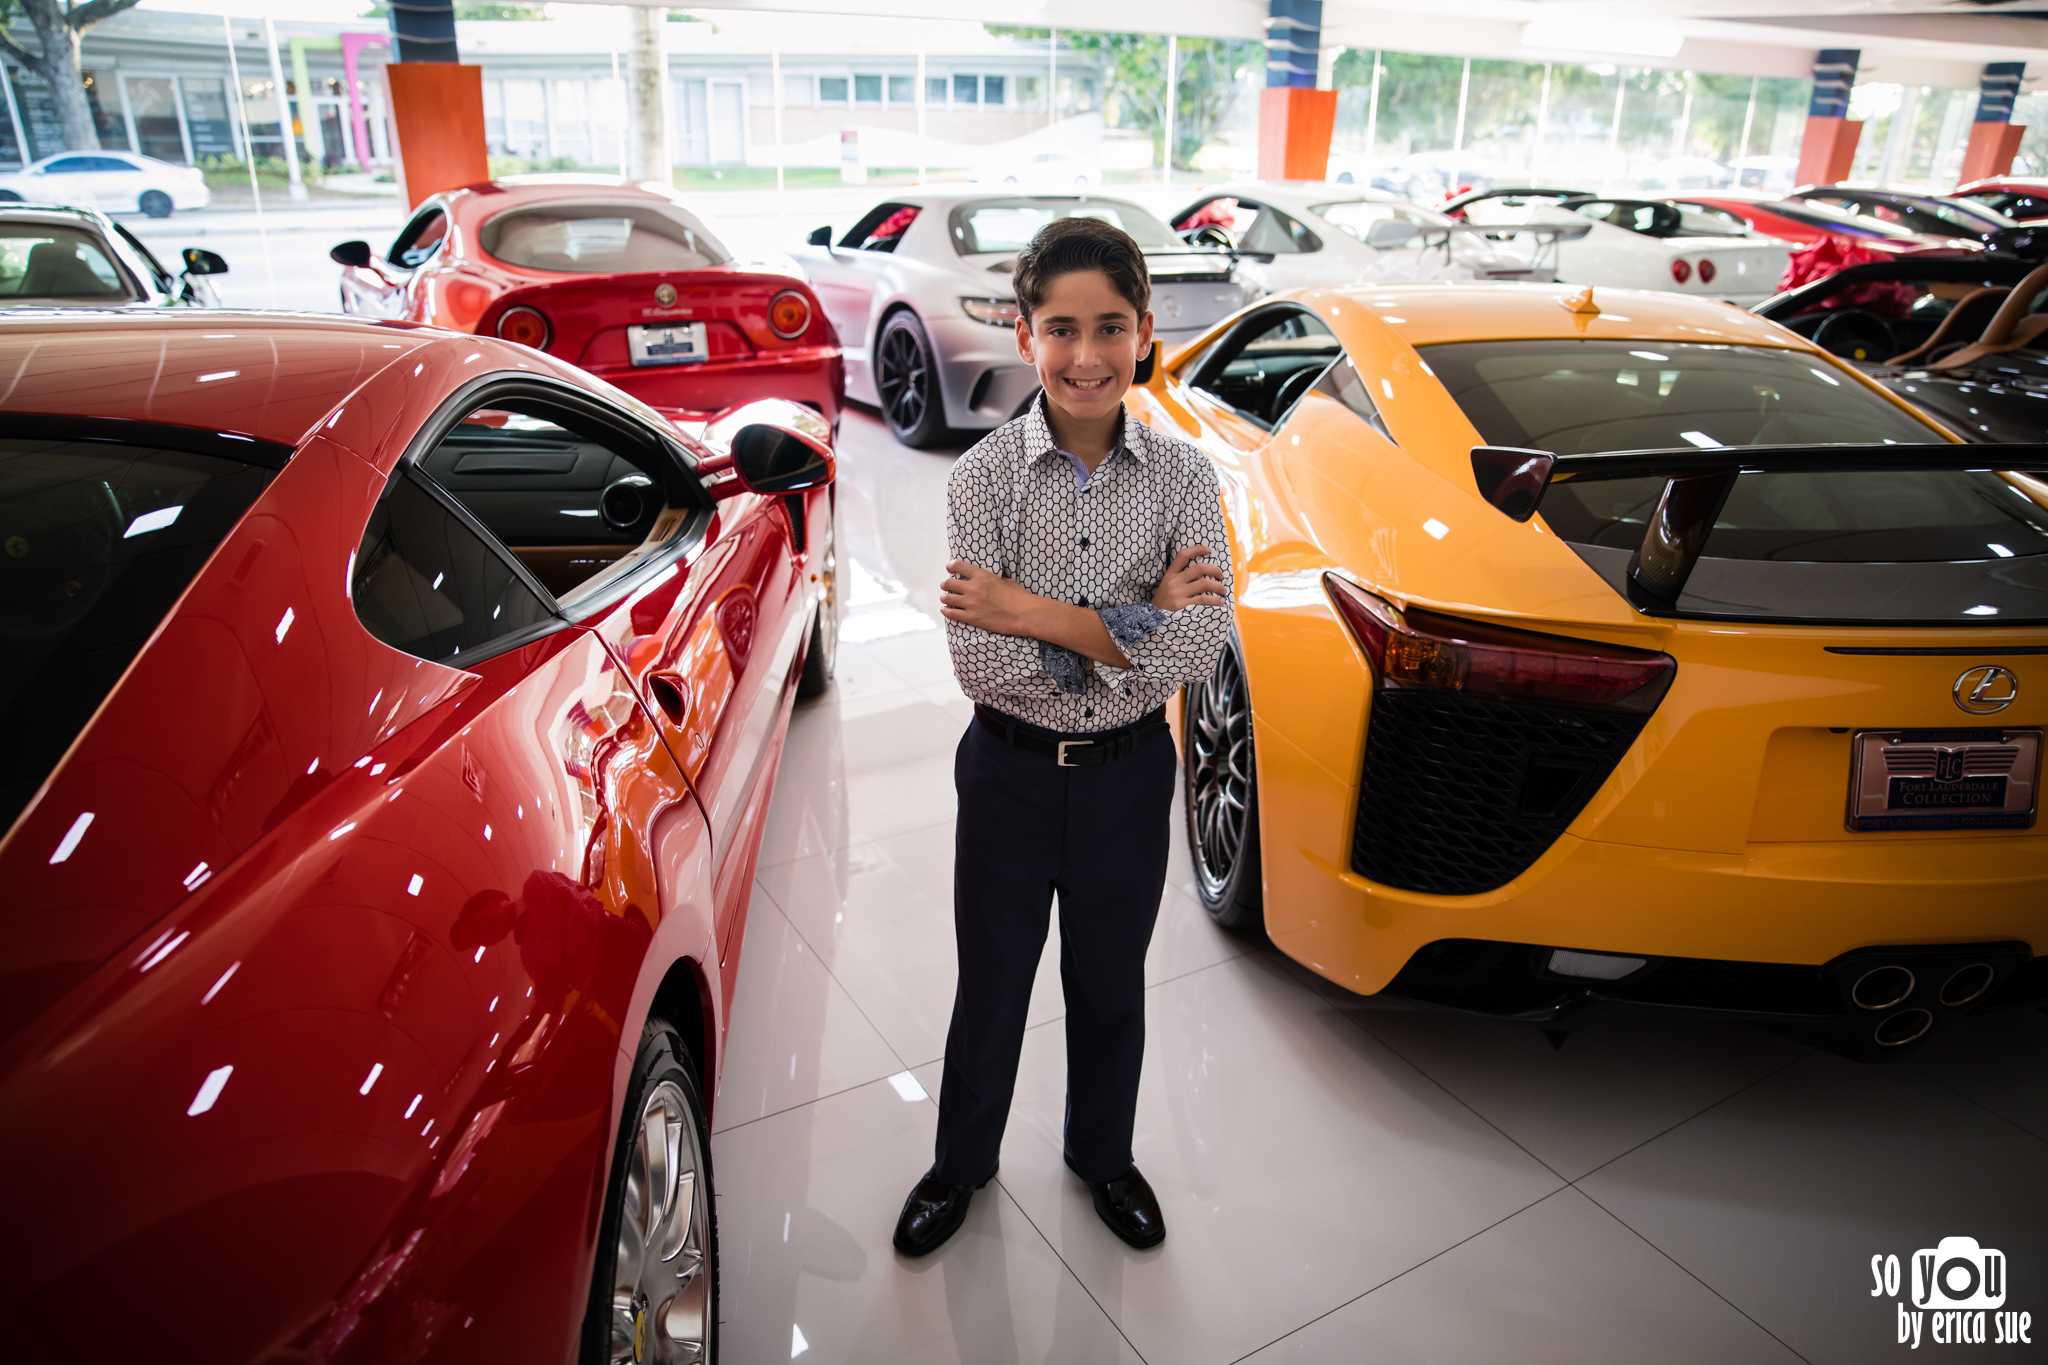 so-you-by-erica-sue-mitzvah-photographer-collection-luxury-car-ft-lauderdale-5005.jpg